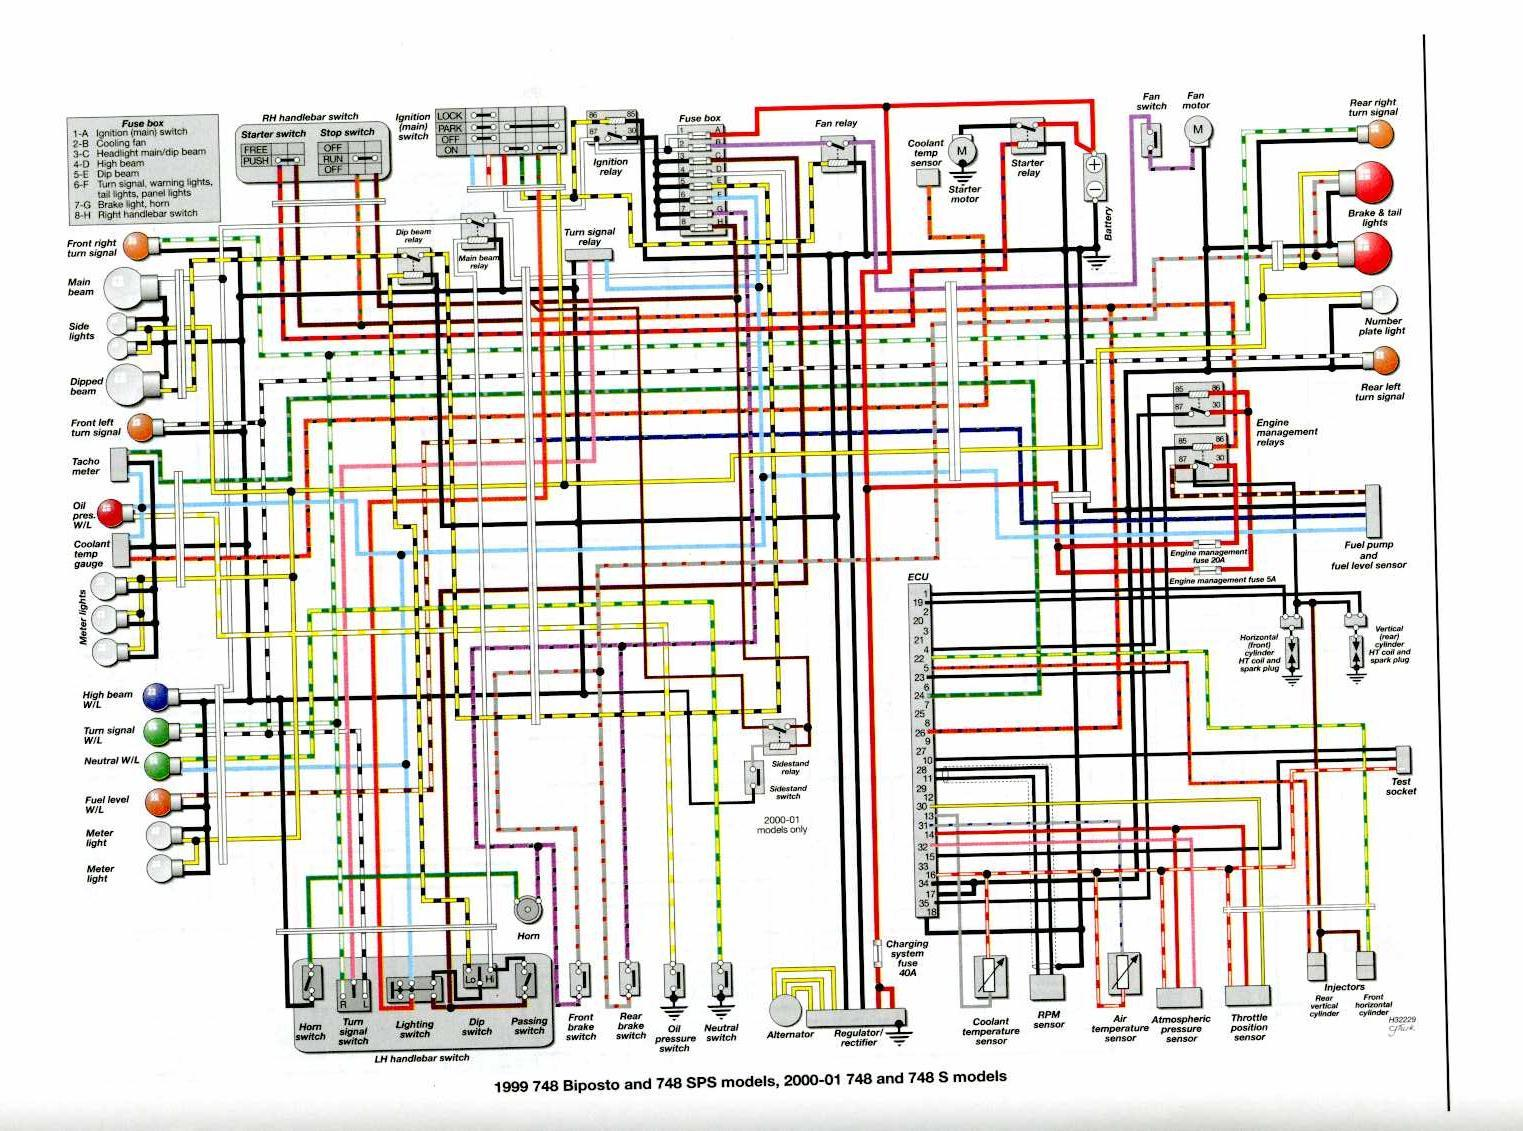 ducati 999 wiring diagram voltage regulator ducati 600ss wiring diagram